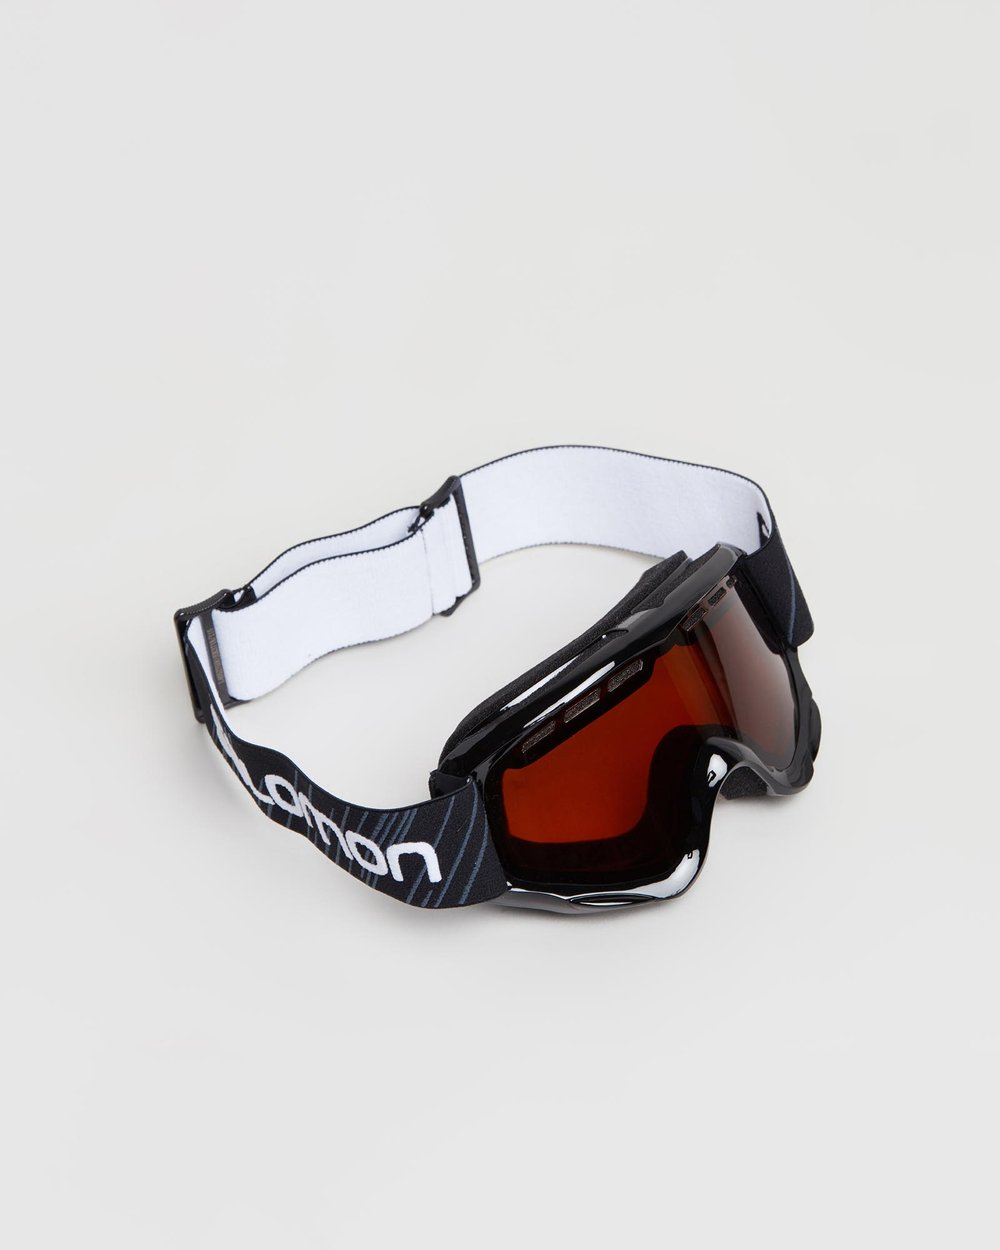 a6b881062aae Juke Access Snow Goggles - Kids-Teens by Salomon Online | THE ICONIC |  Australia